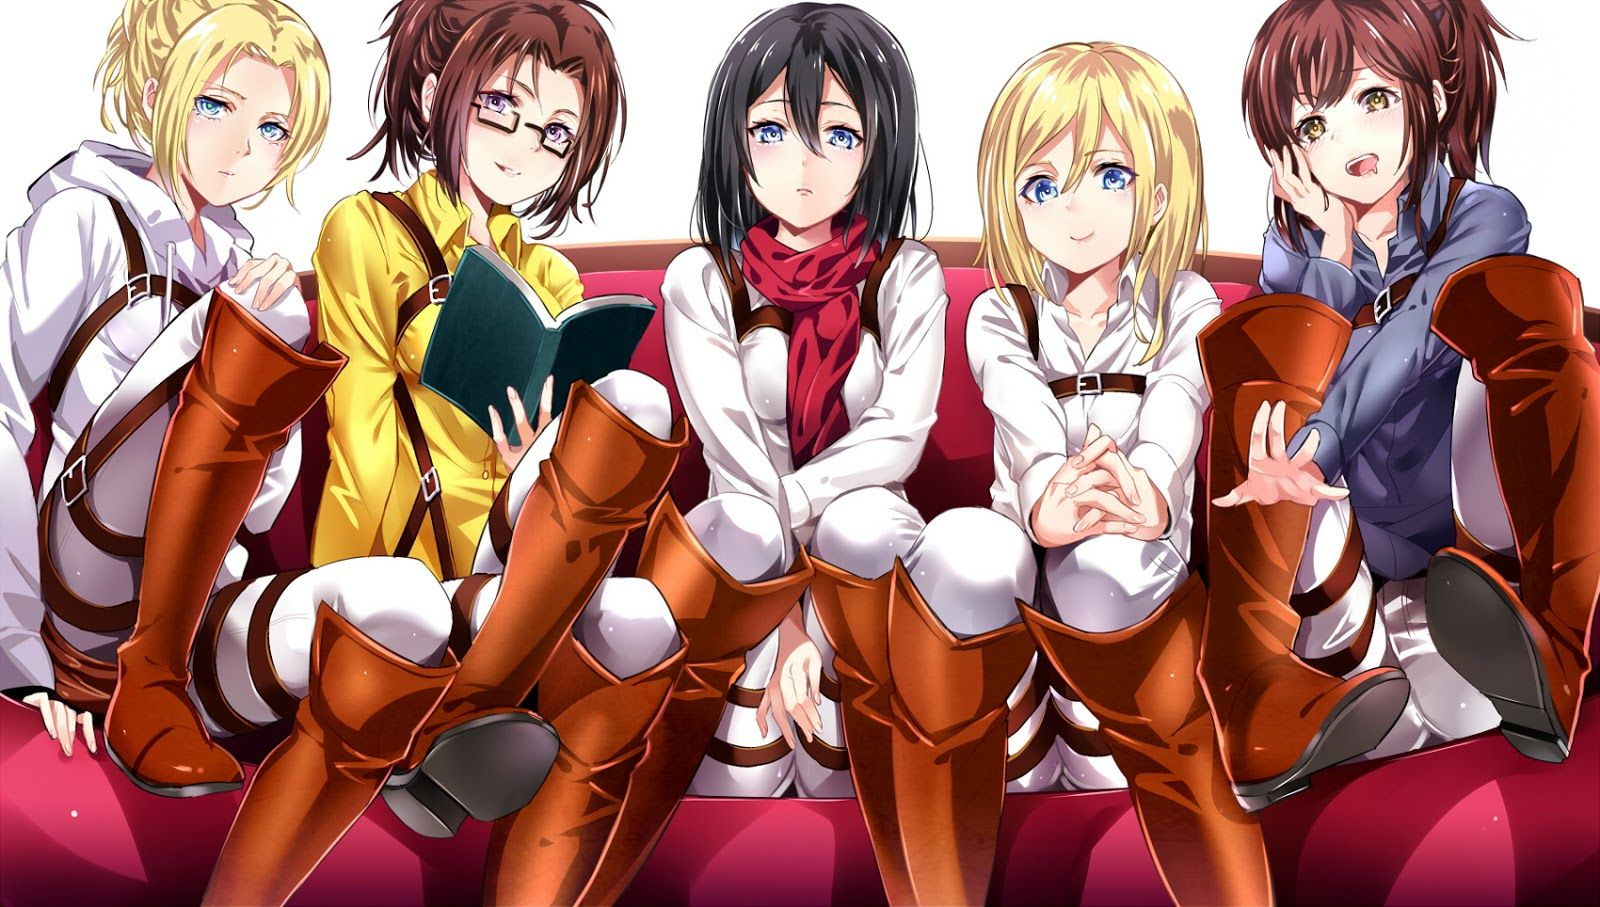 Attack on Titan Girls Fan Art: Shingeki no Kyojin Females | Attack on titan  anime, Attack on titan art, Attack on titan